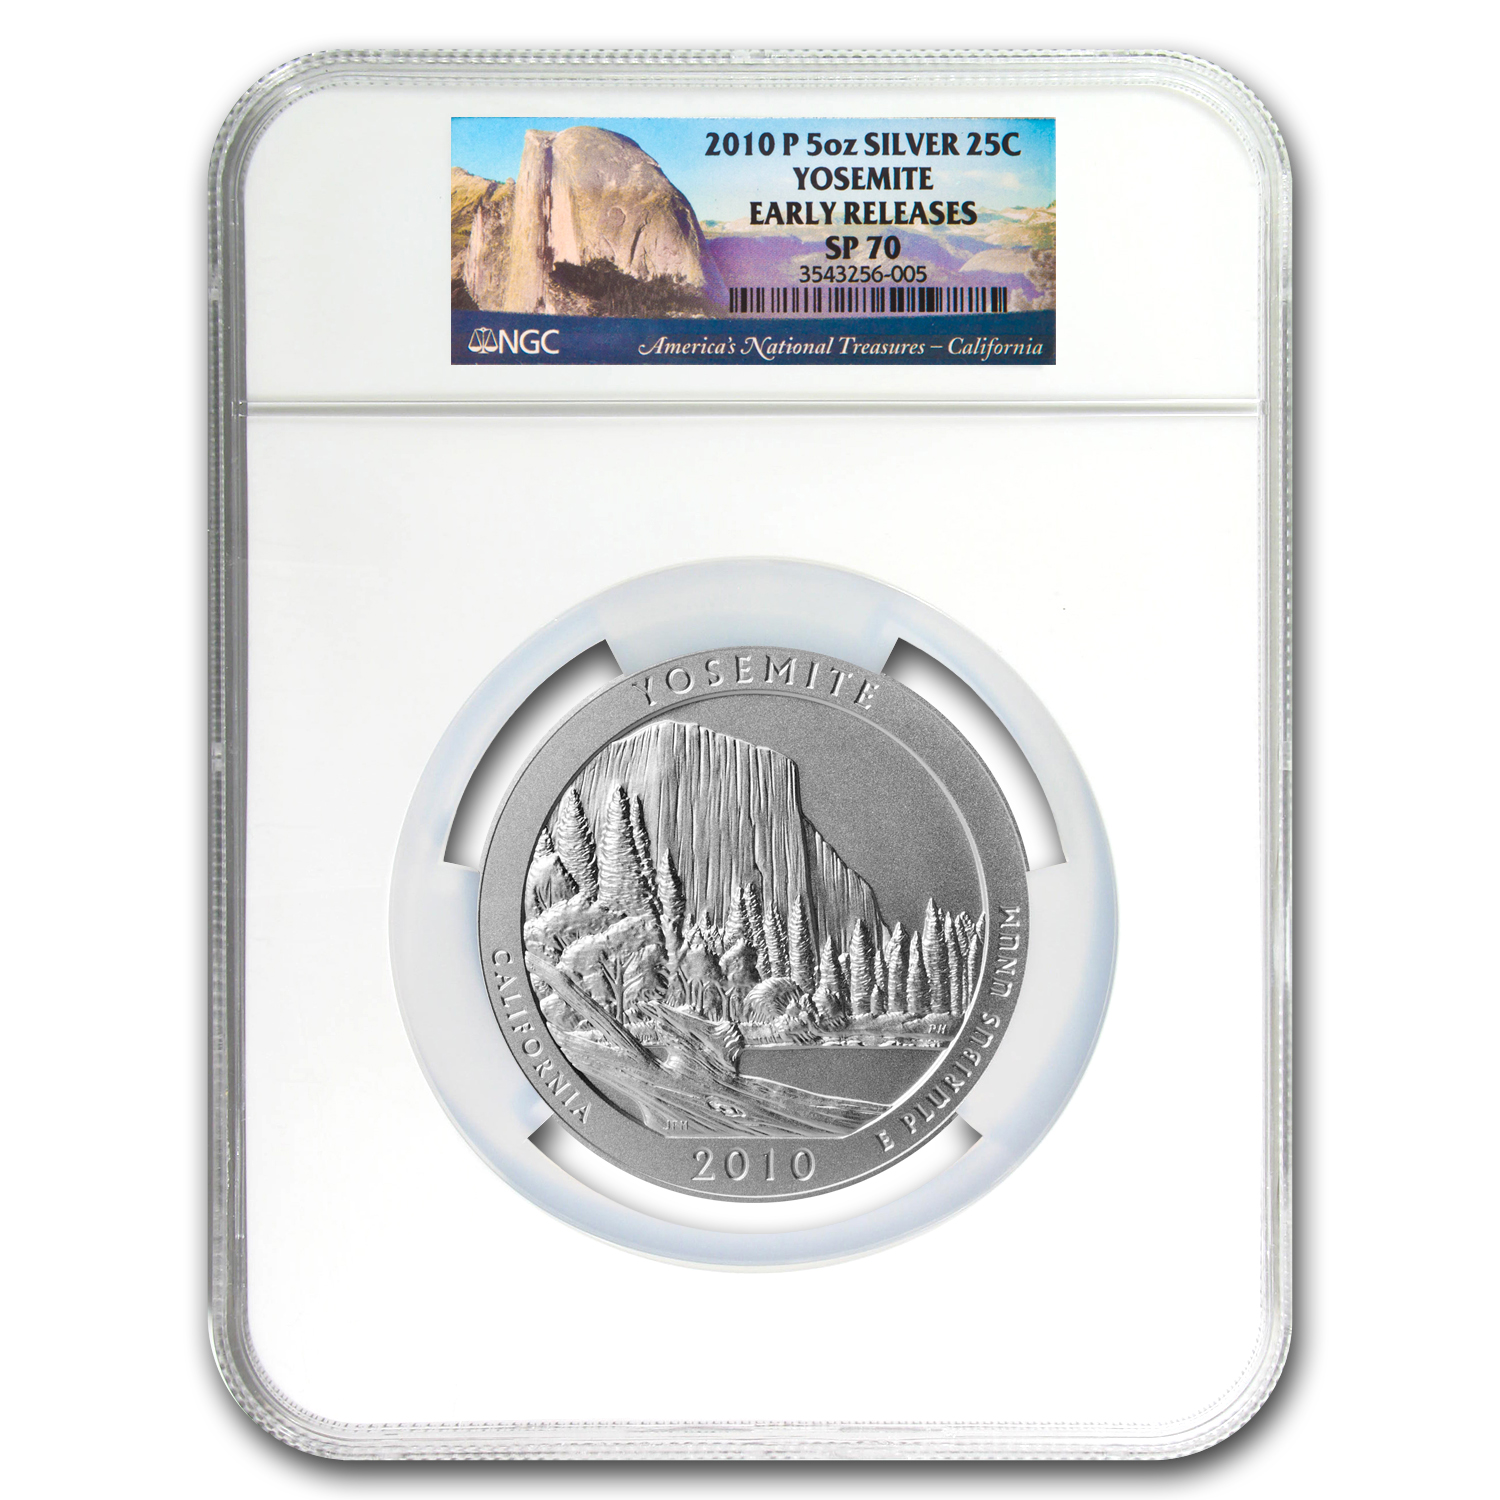 2010-P 5 oz Silver ATB Yosemite SP-70 NGC (Early Releases)